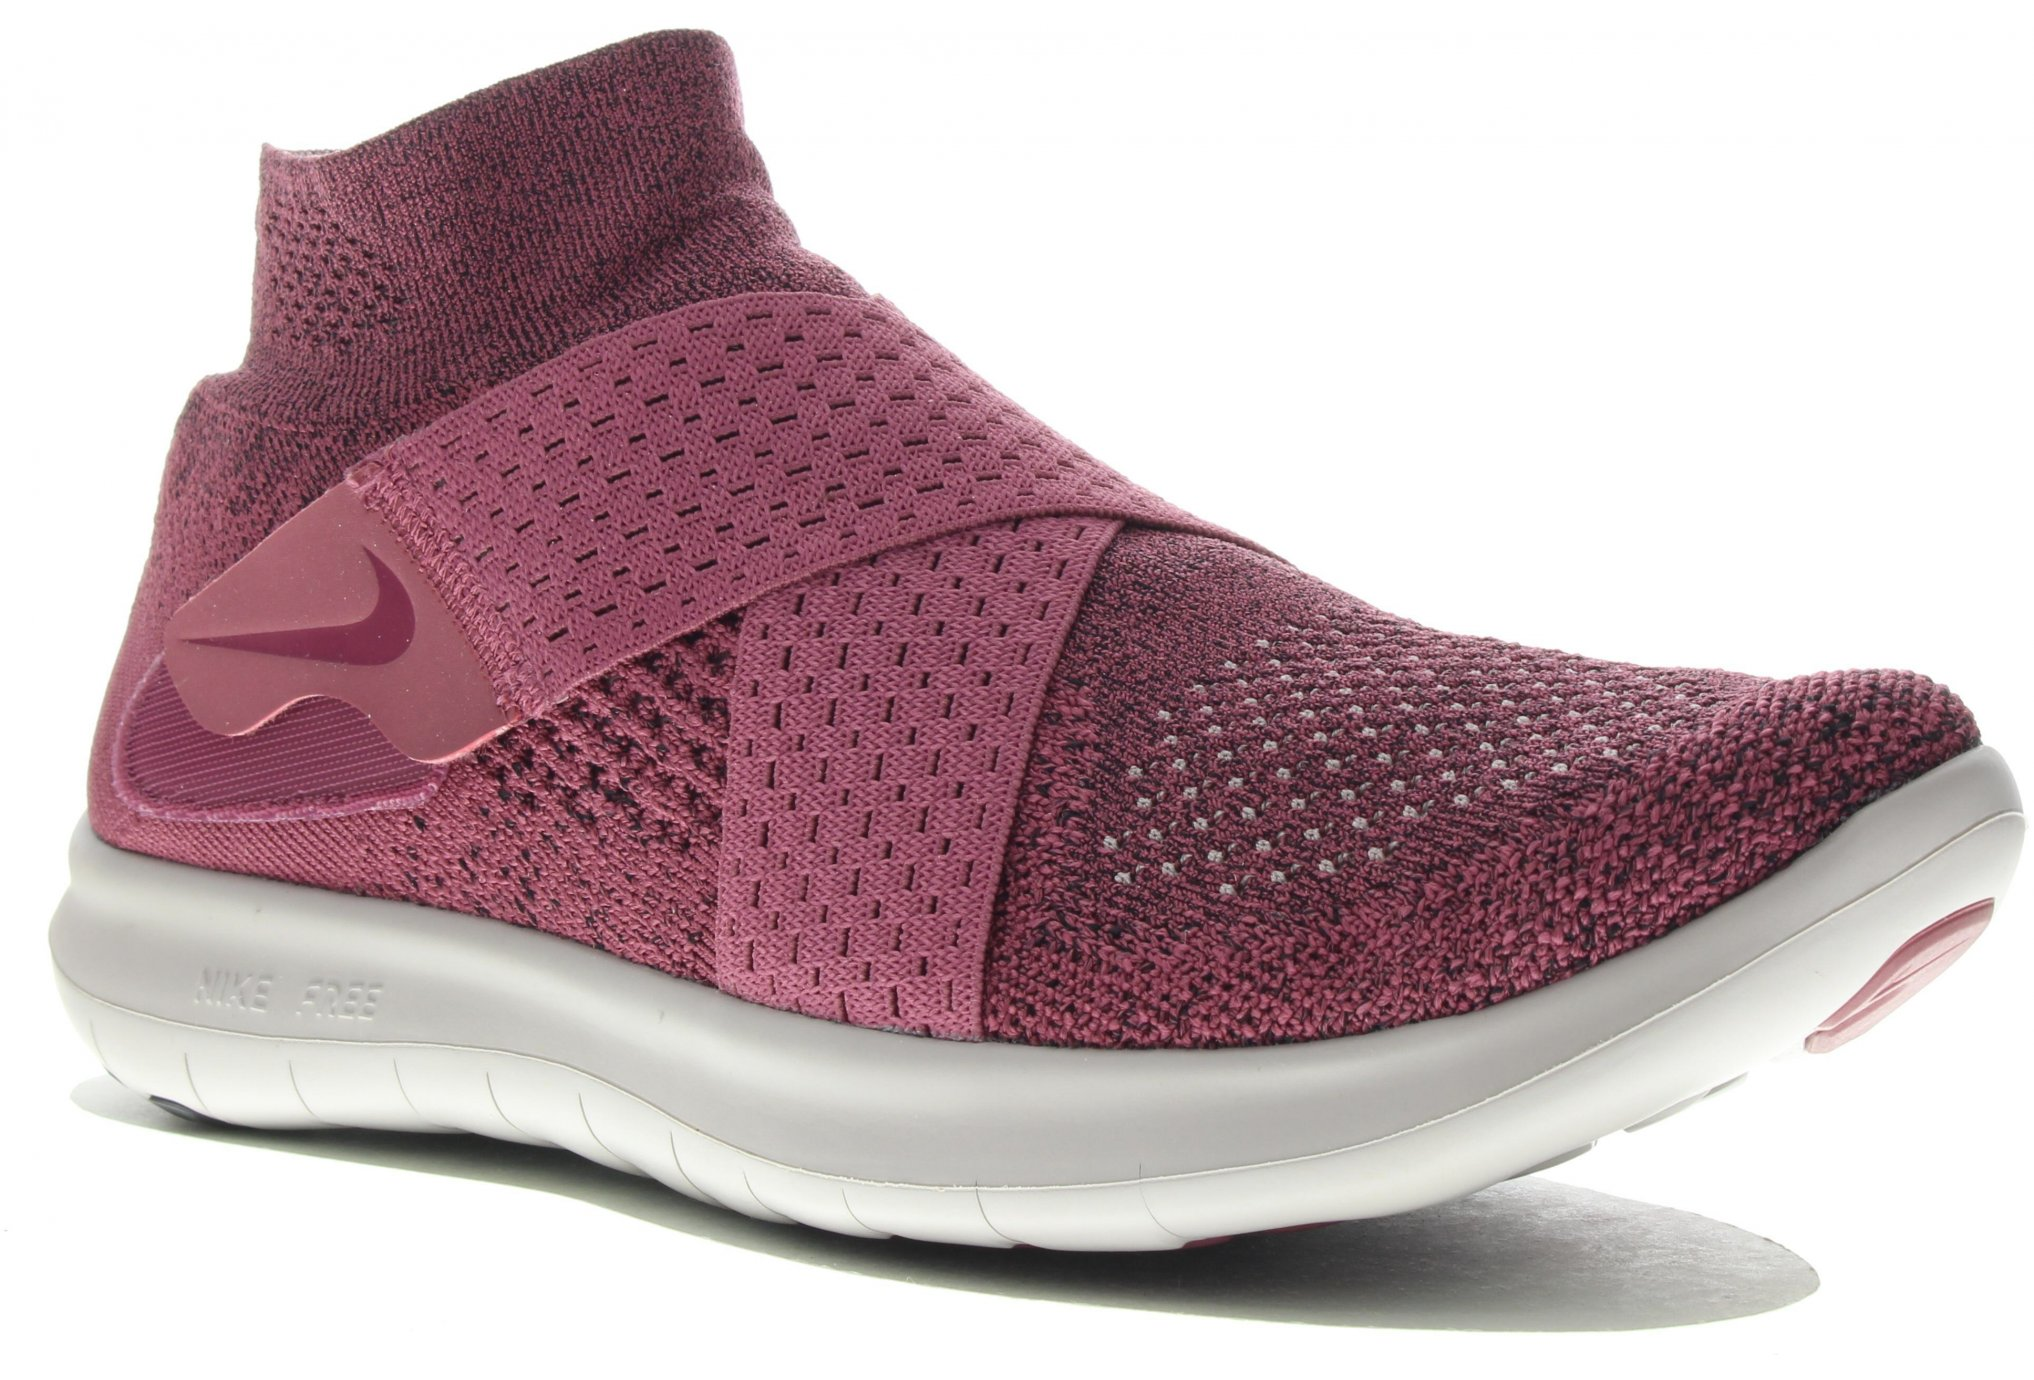 Nike Free RN Motion Flyknit 2017 Chaussures running femme